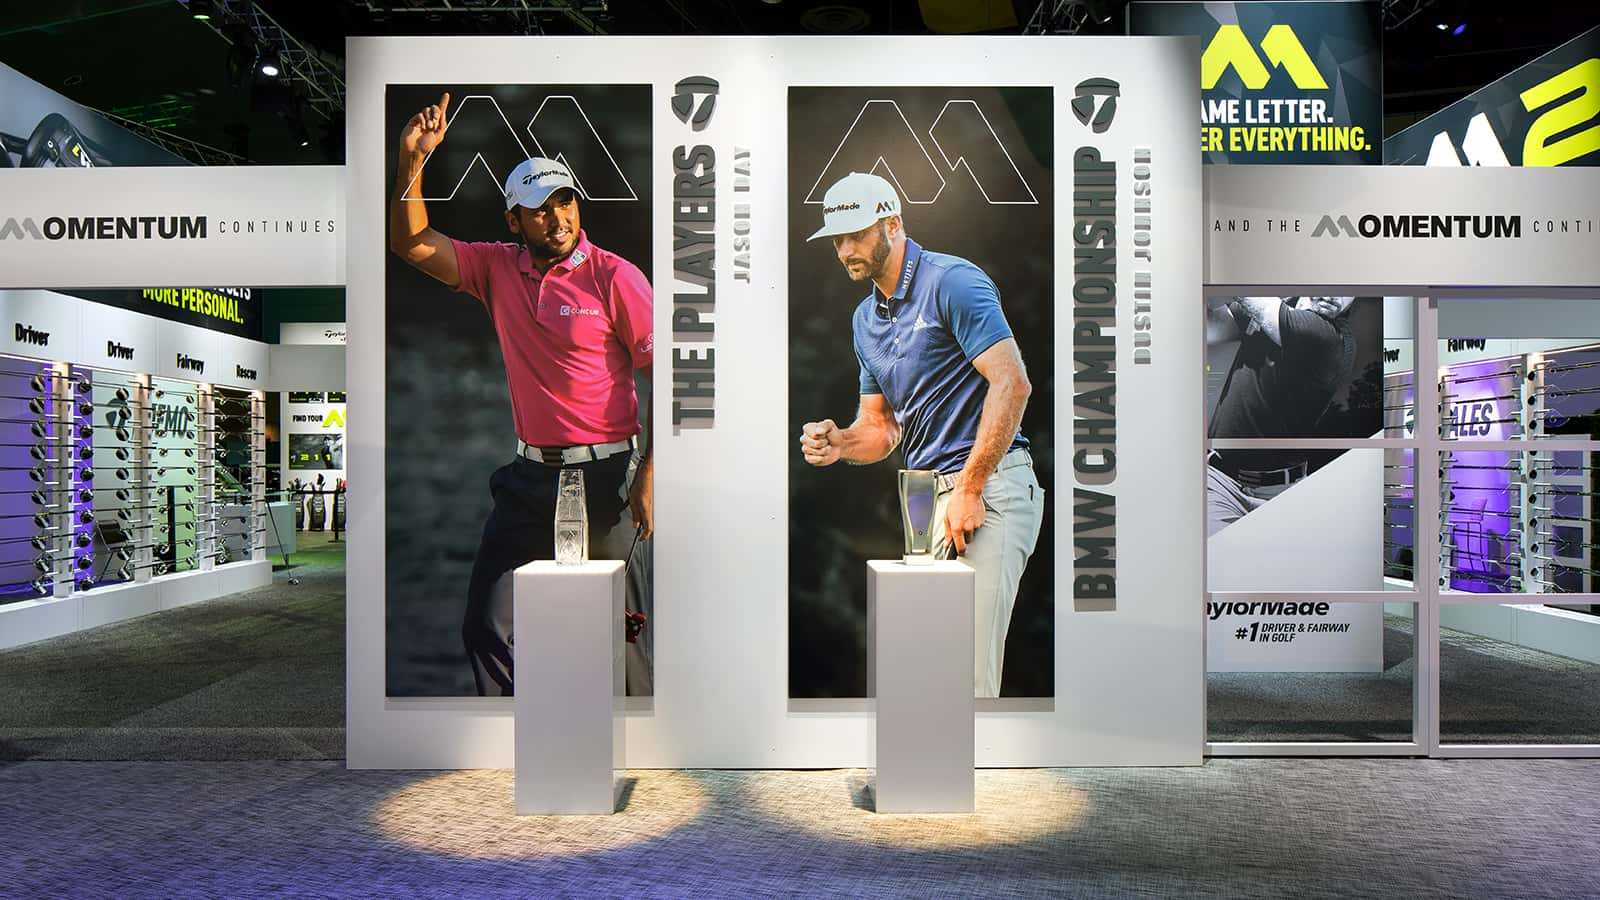 Jason Day and Dustin Johnson championship displays at the TaylorMade PGA Merchandise Show 2017 experience.